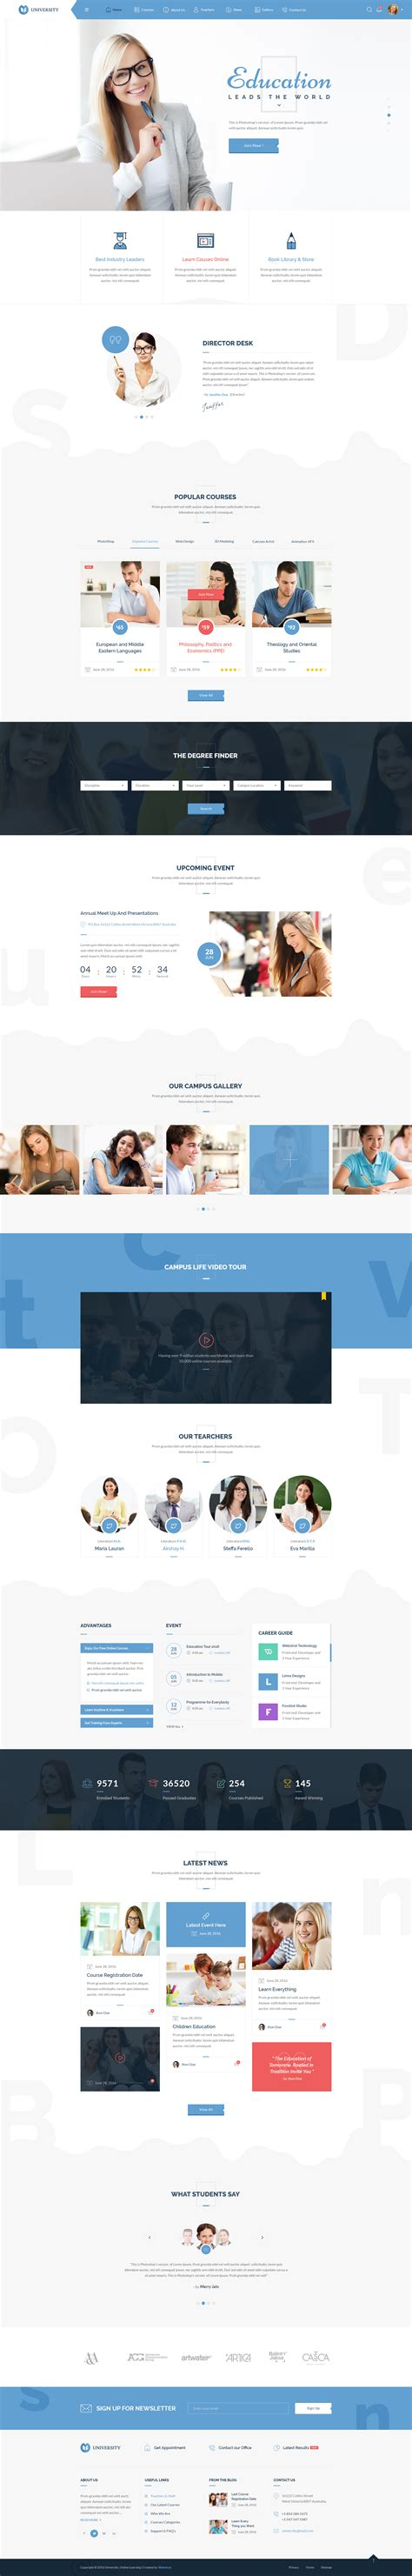 bootstrap templates for university university education smart learning bootstrap psd